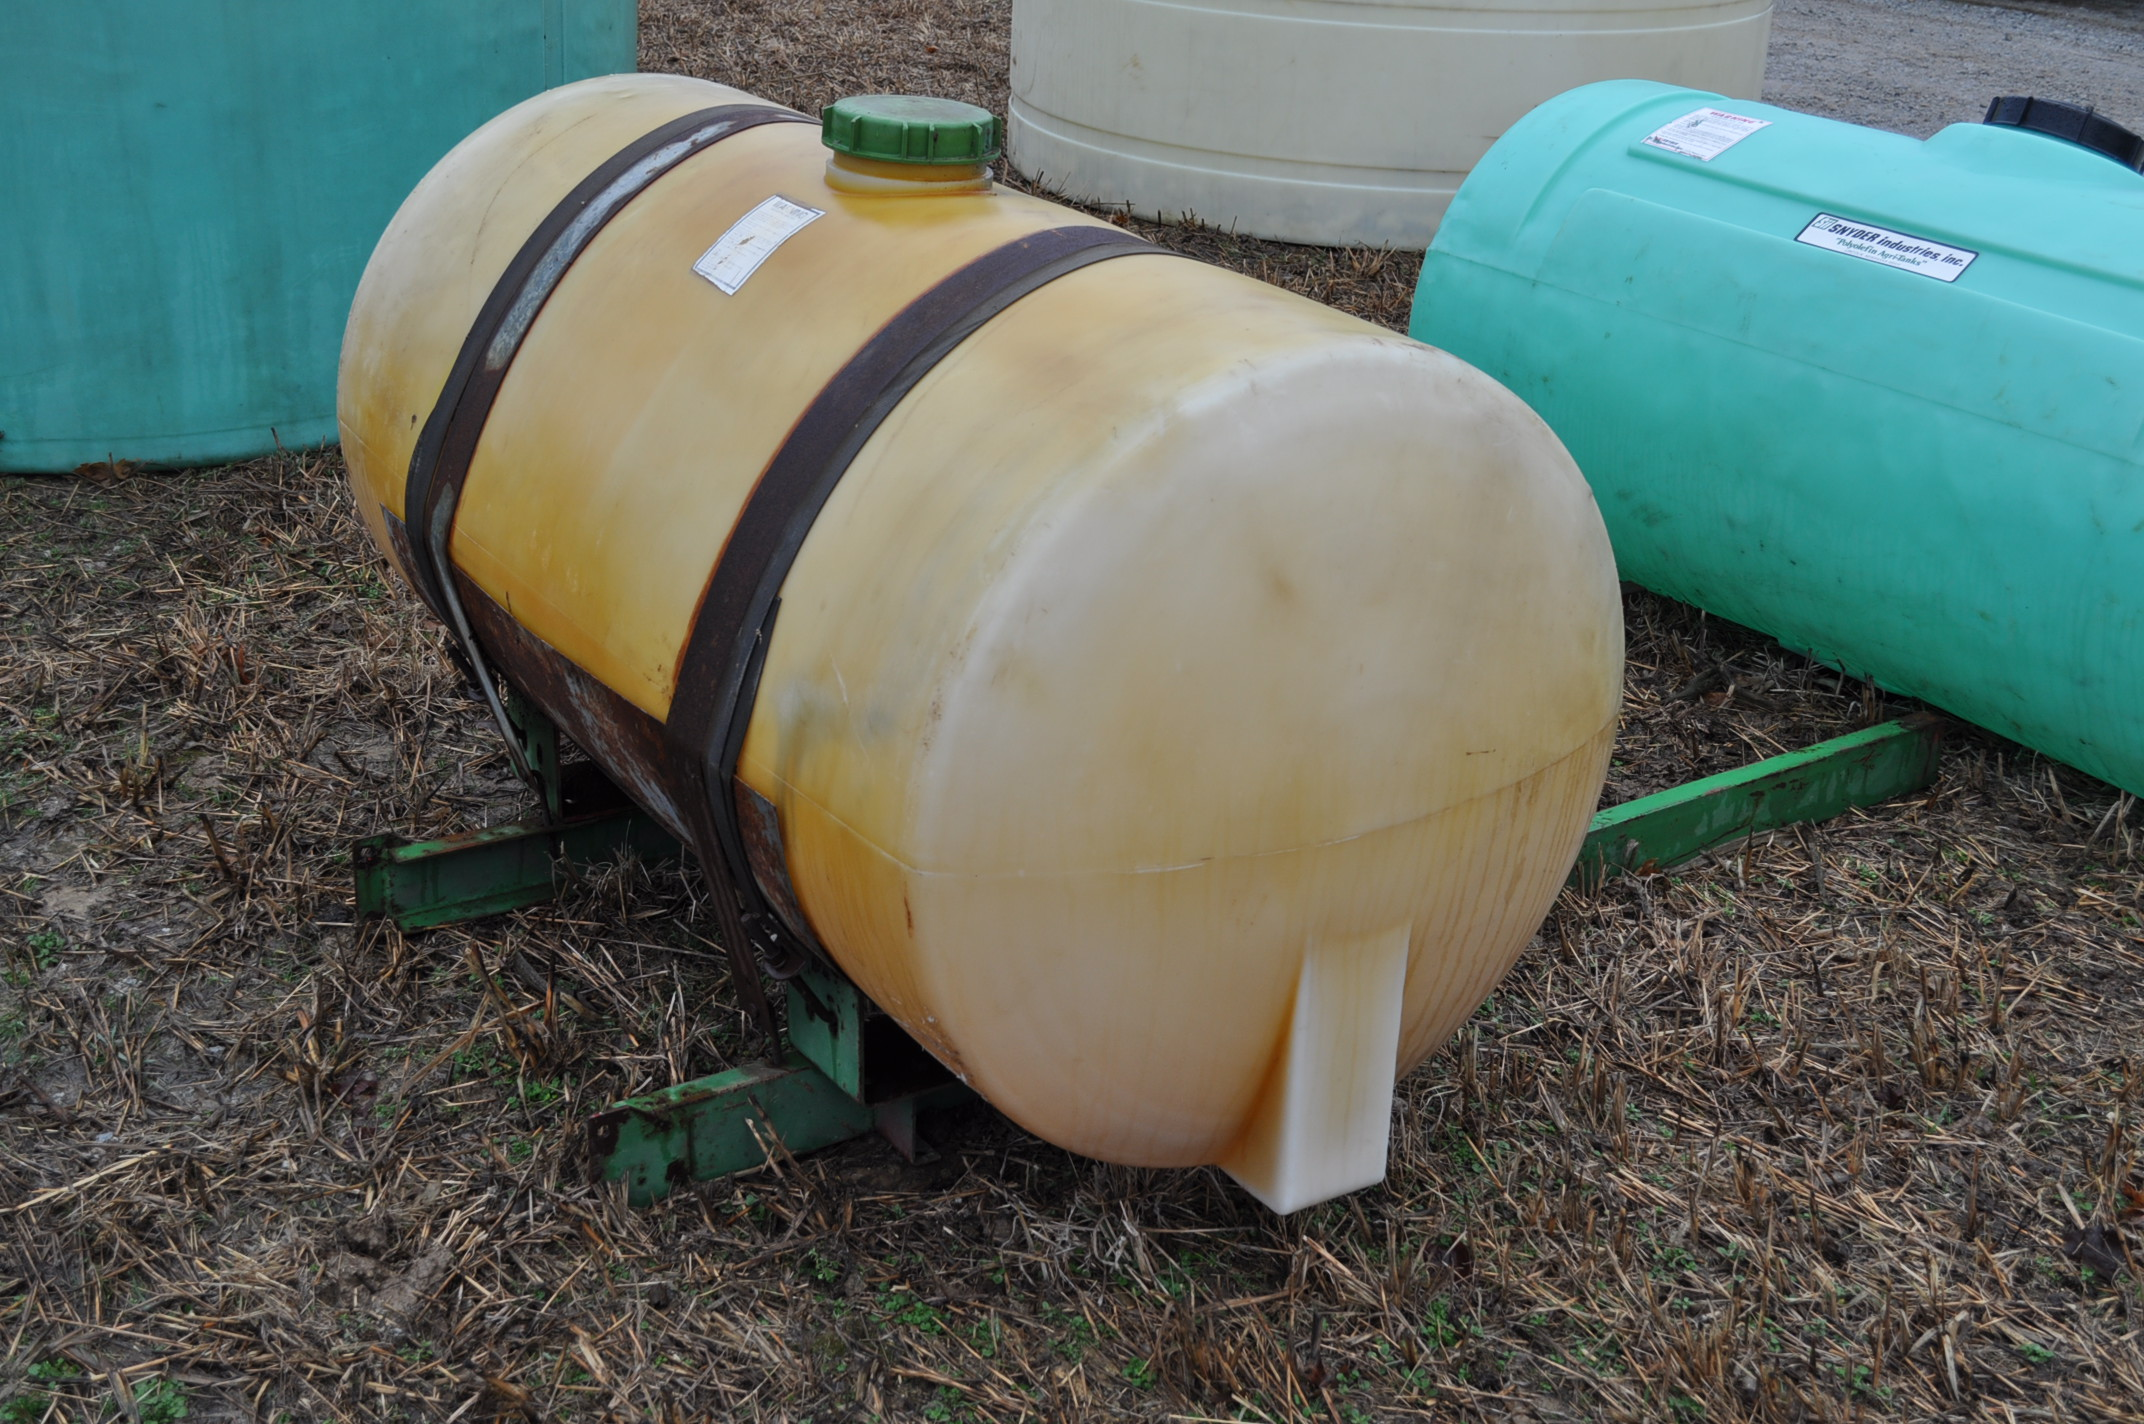 200 gallon round poly tank with cradle - Image 3 of 4